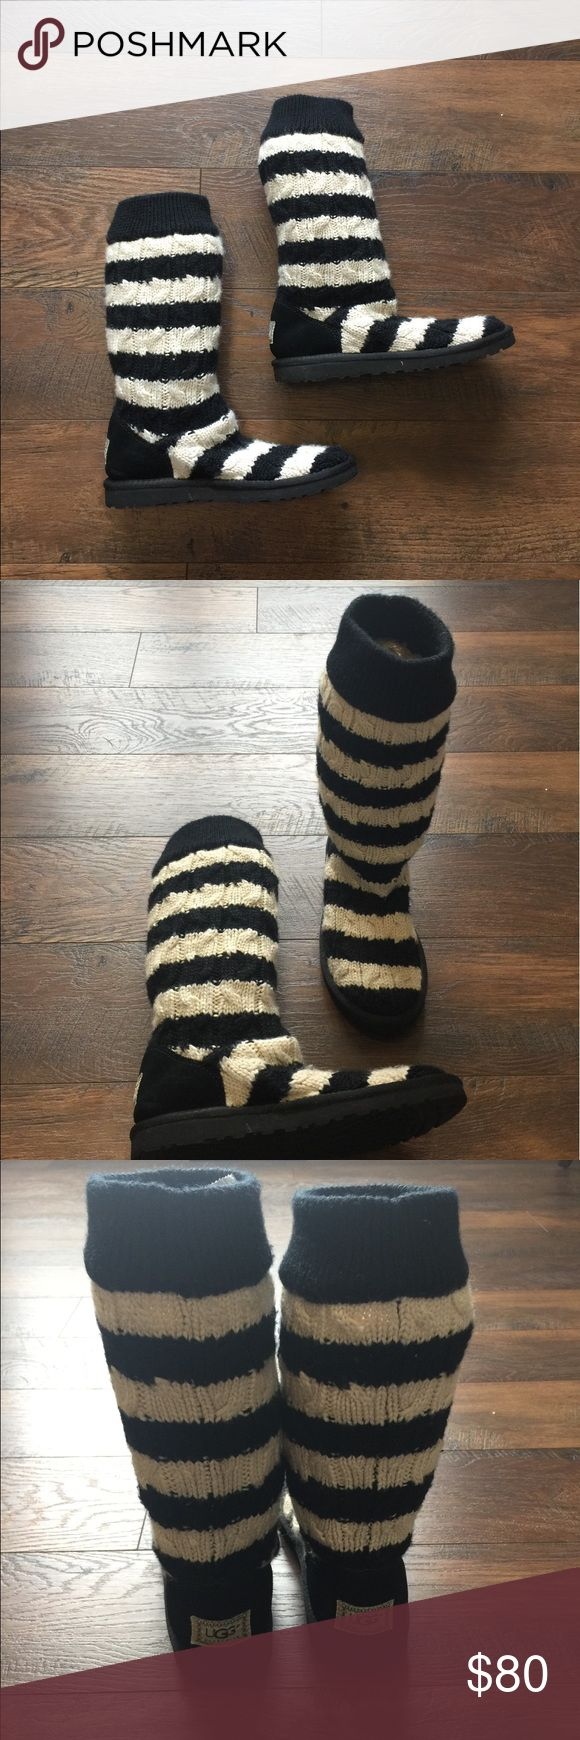 """UGG Australia Cable Knit Striped Boots Almost like new UGG Australia Cable Knit Striped Boots. Worn once. Original price tag still attached! Black and white striped sweater boots. Size 8. Do not have box. Can wear unrolled as seen in photos or rolled down. Genuine shearing footbed. 13"""" uncuffed and 7"""" cuffed. A favorite UGG style! UGG Shoes"""